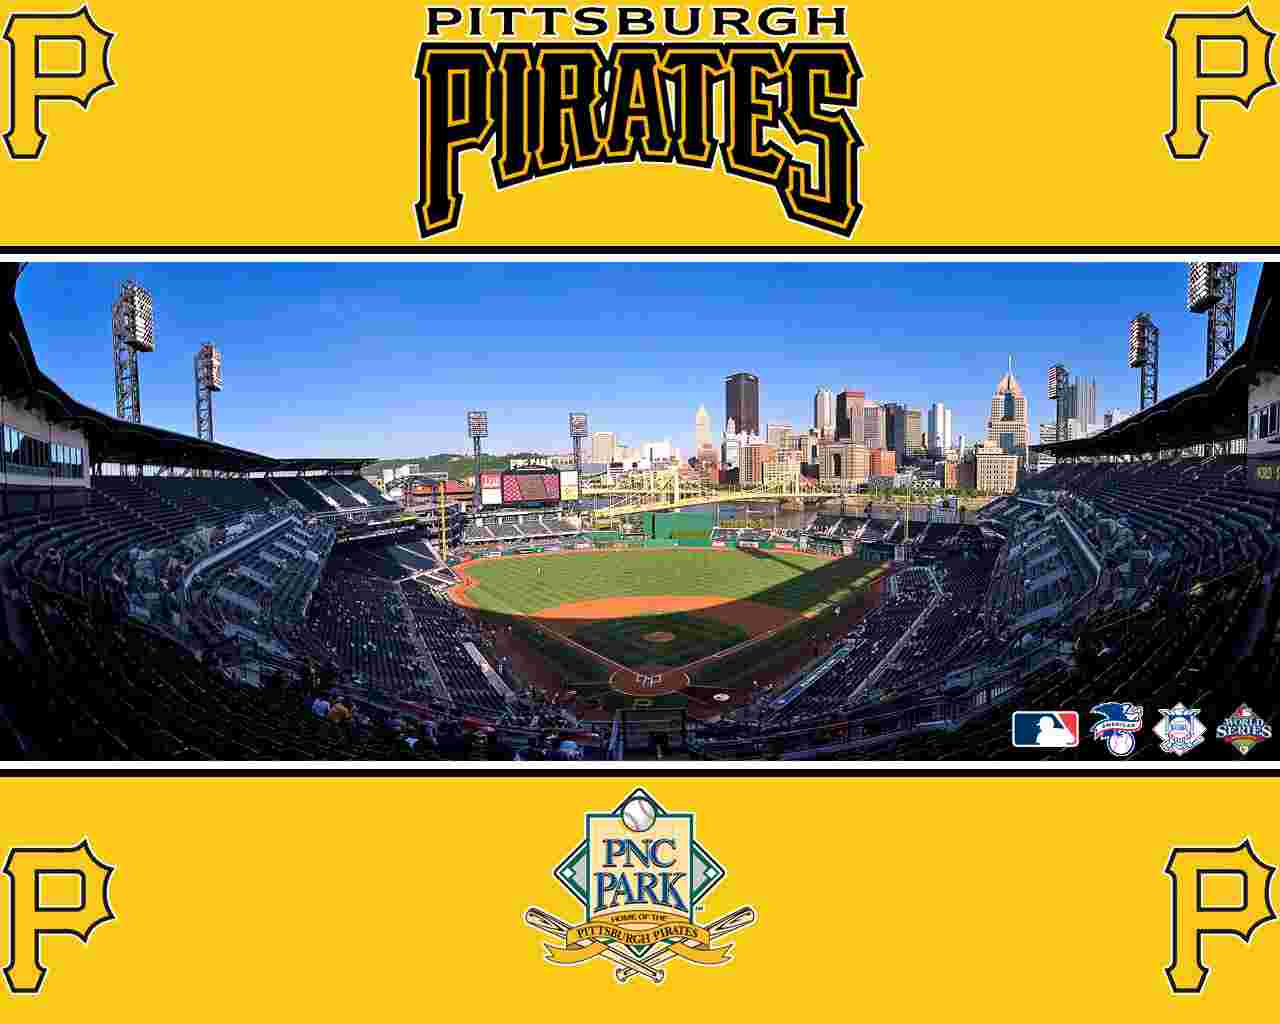 pittsburgh pirates wallpaper   Baseball   Sport   Wallpaper Collection 1280x1024